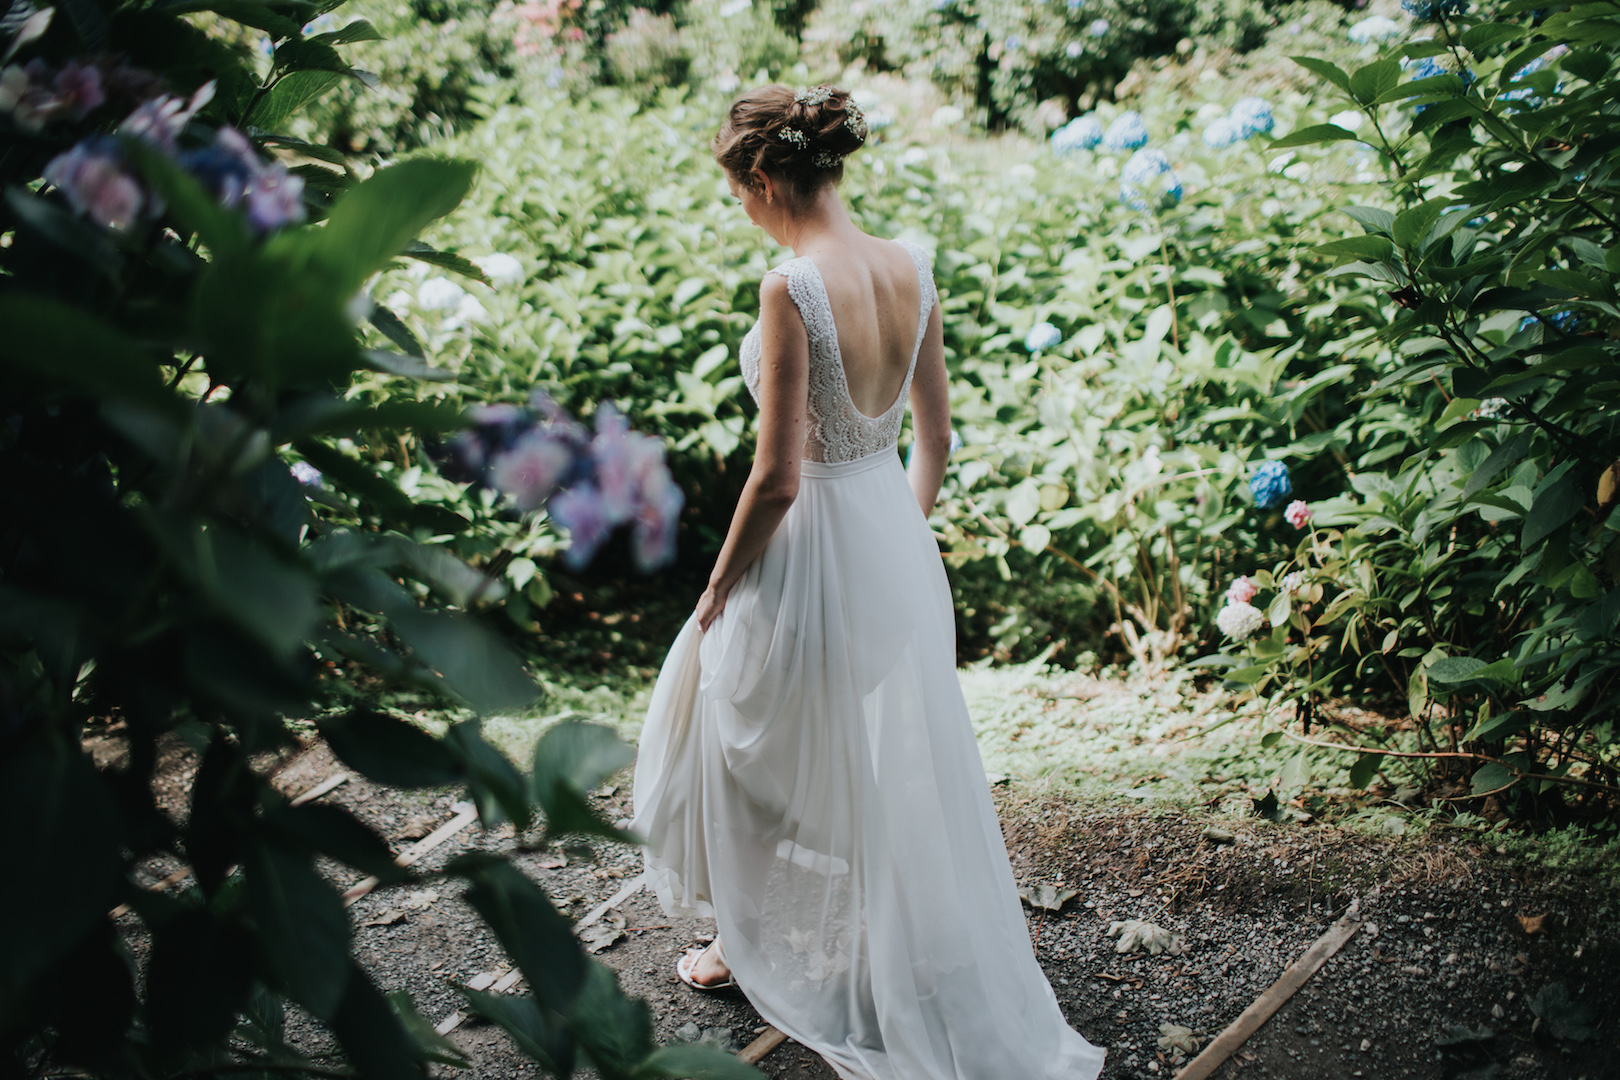 Choosing your wedding dress is a VERY important part of planning your Cornwall Wedding. Let Jenny Wren help plan your wedding!